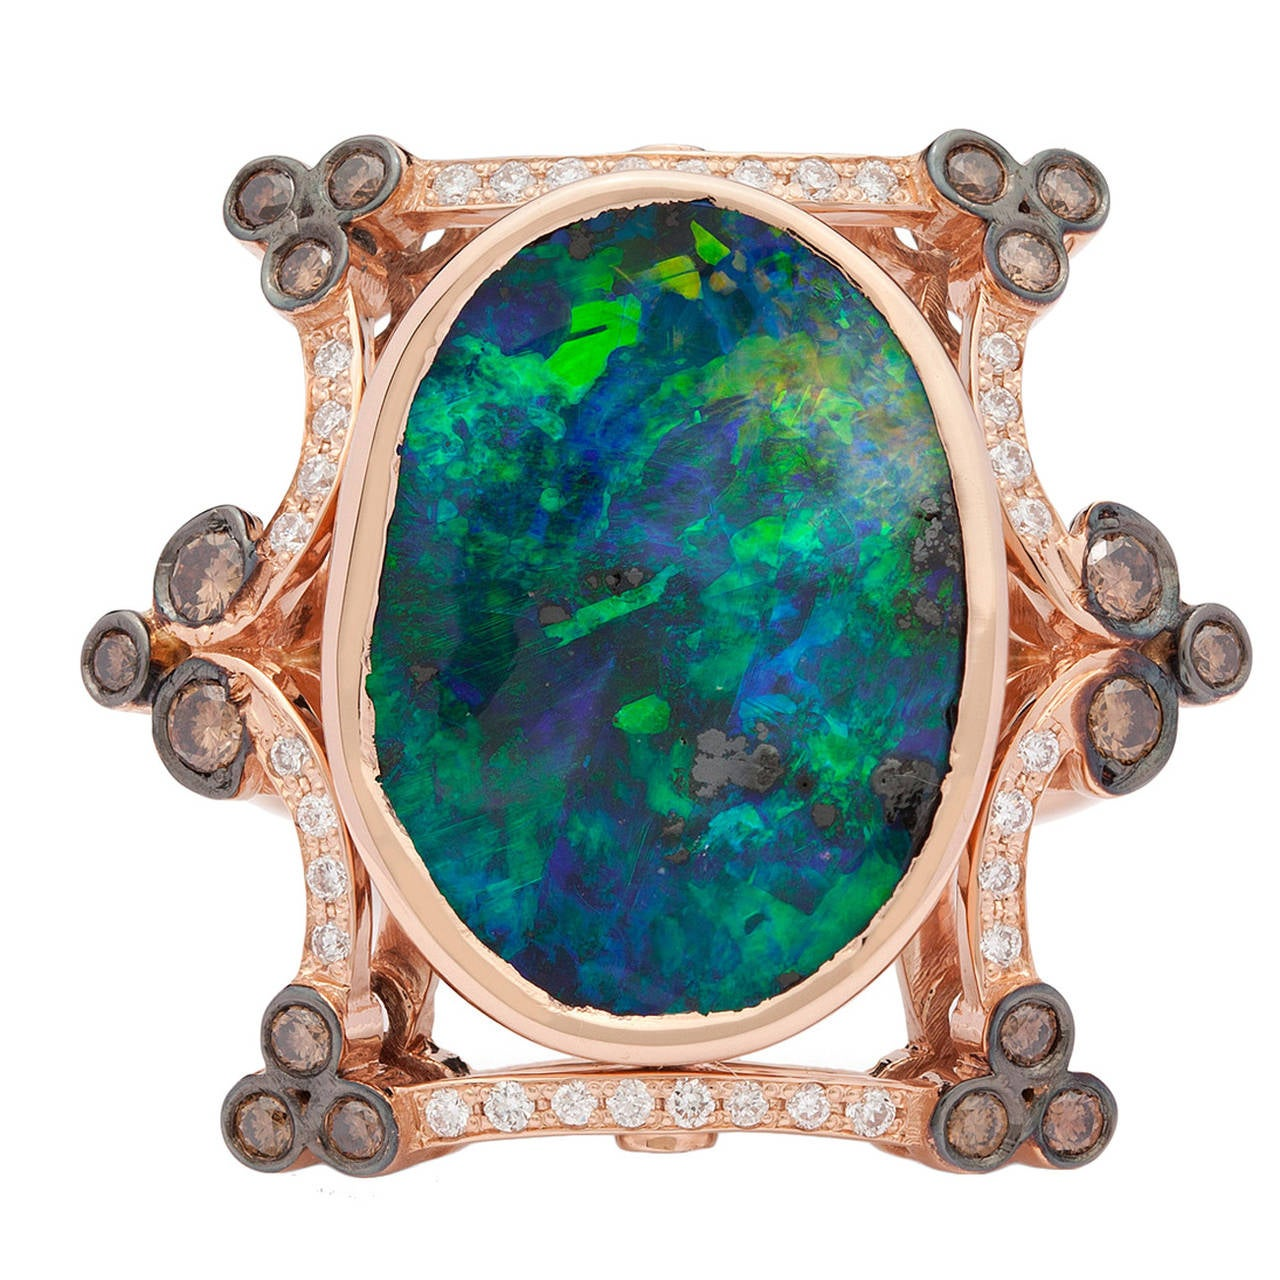 7.23 Carat Black Opal Diamond Gold Cocktail Ring